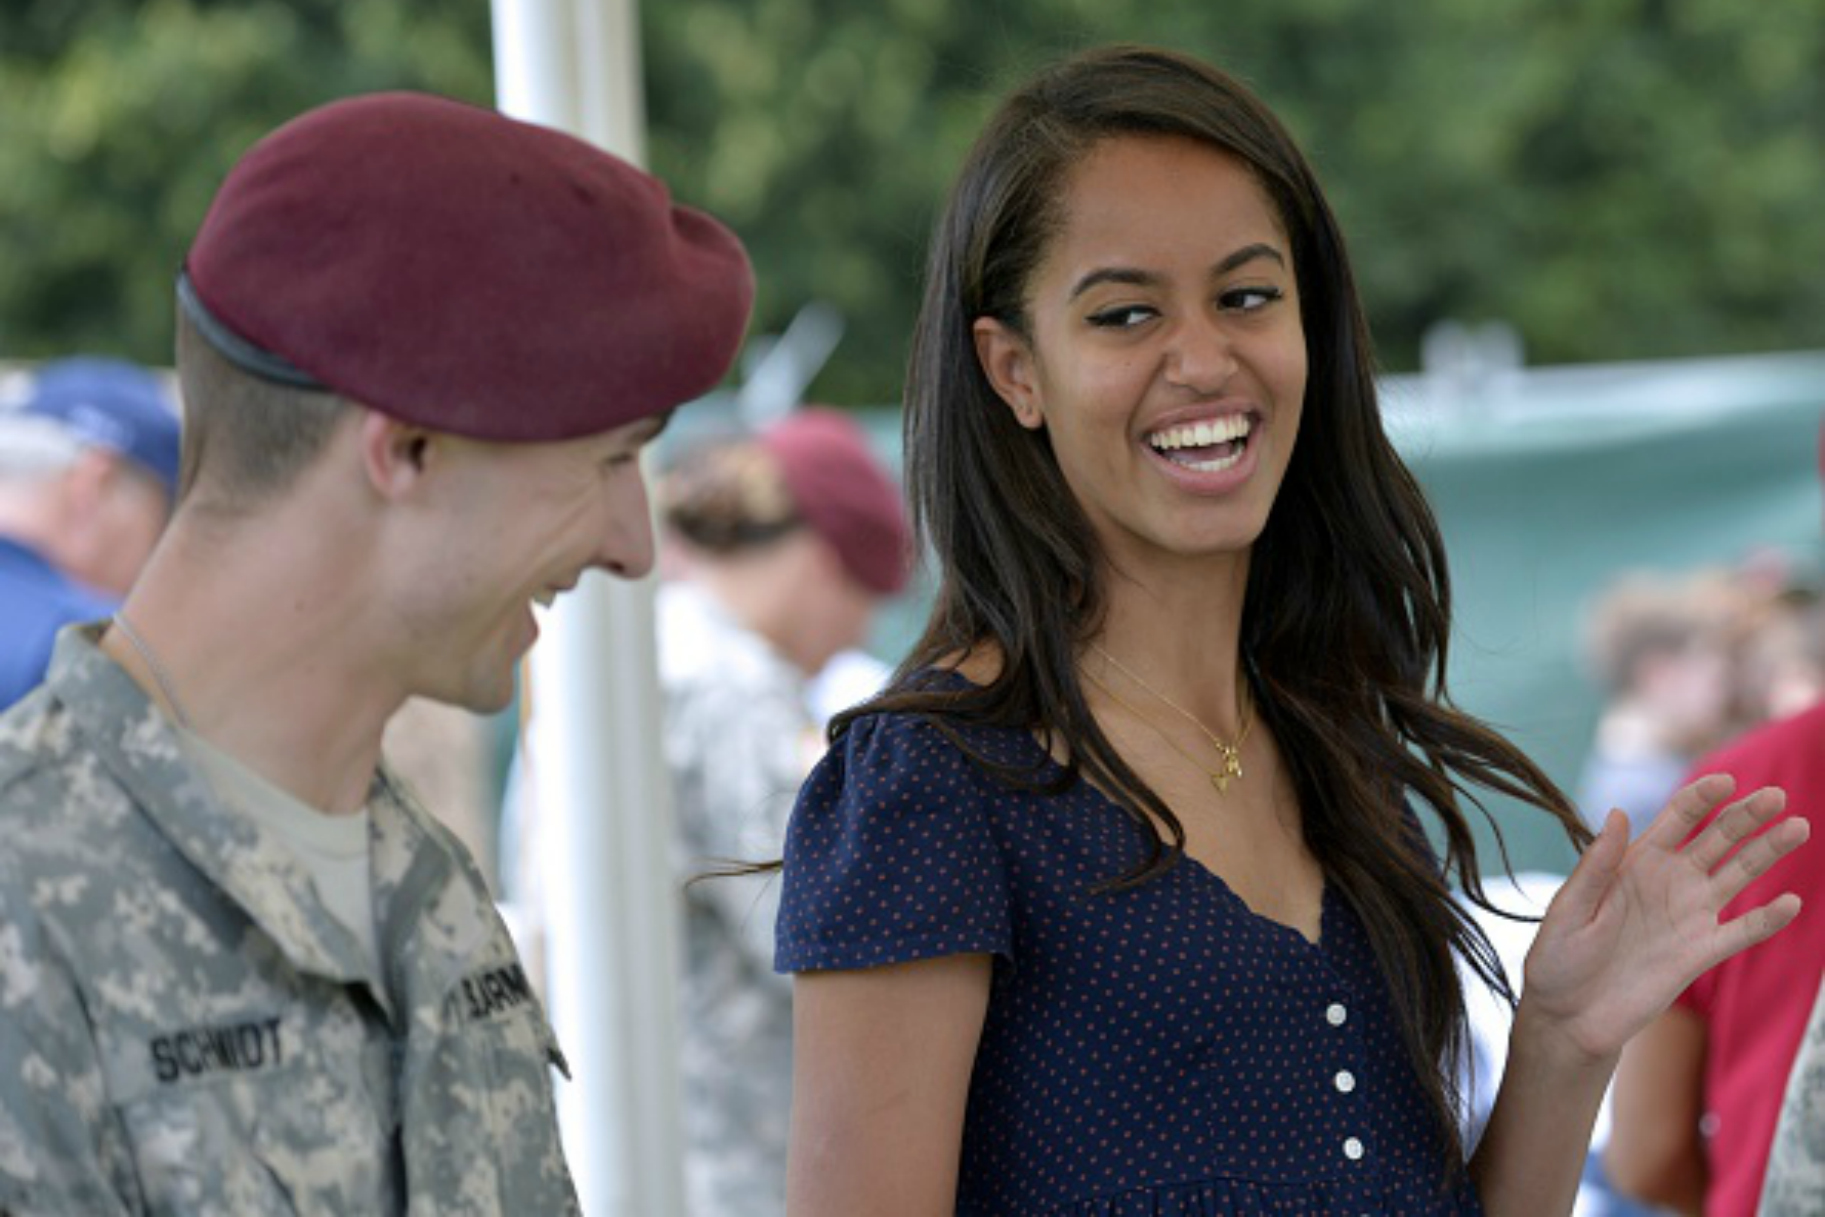 Does Malia Obama Have A Boyfriend? | Very Real